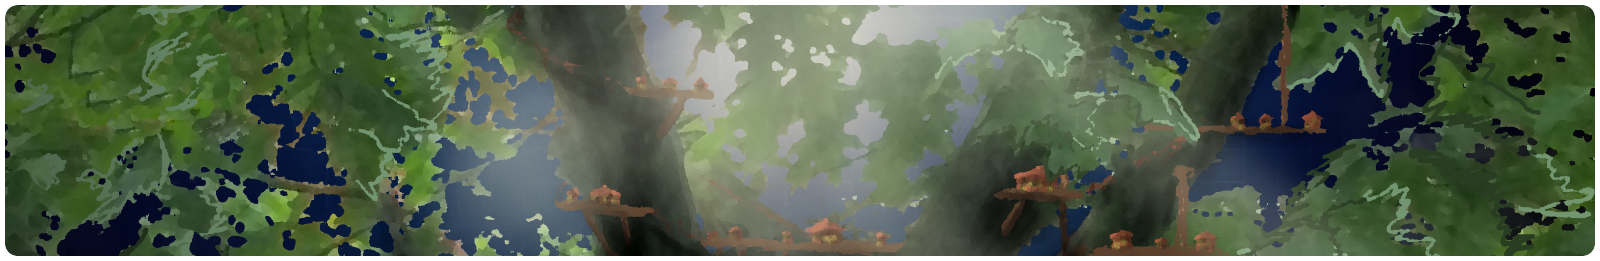 thin tree banner.png